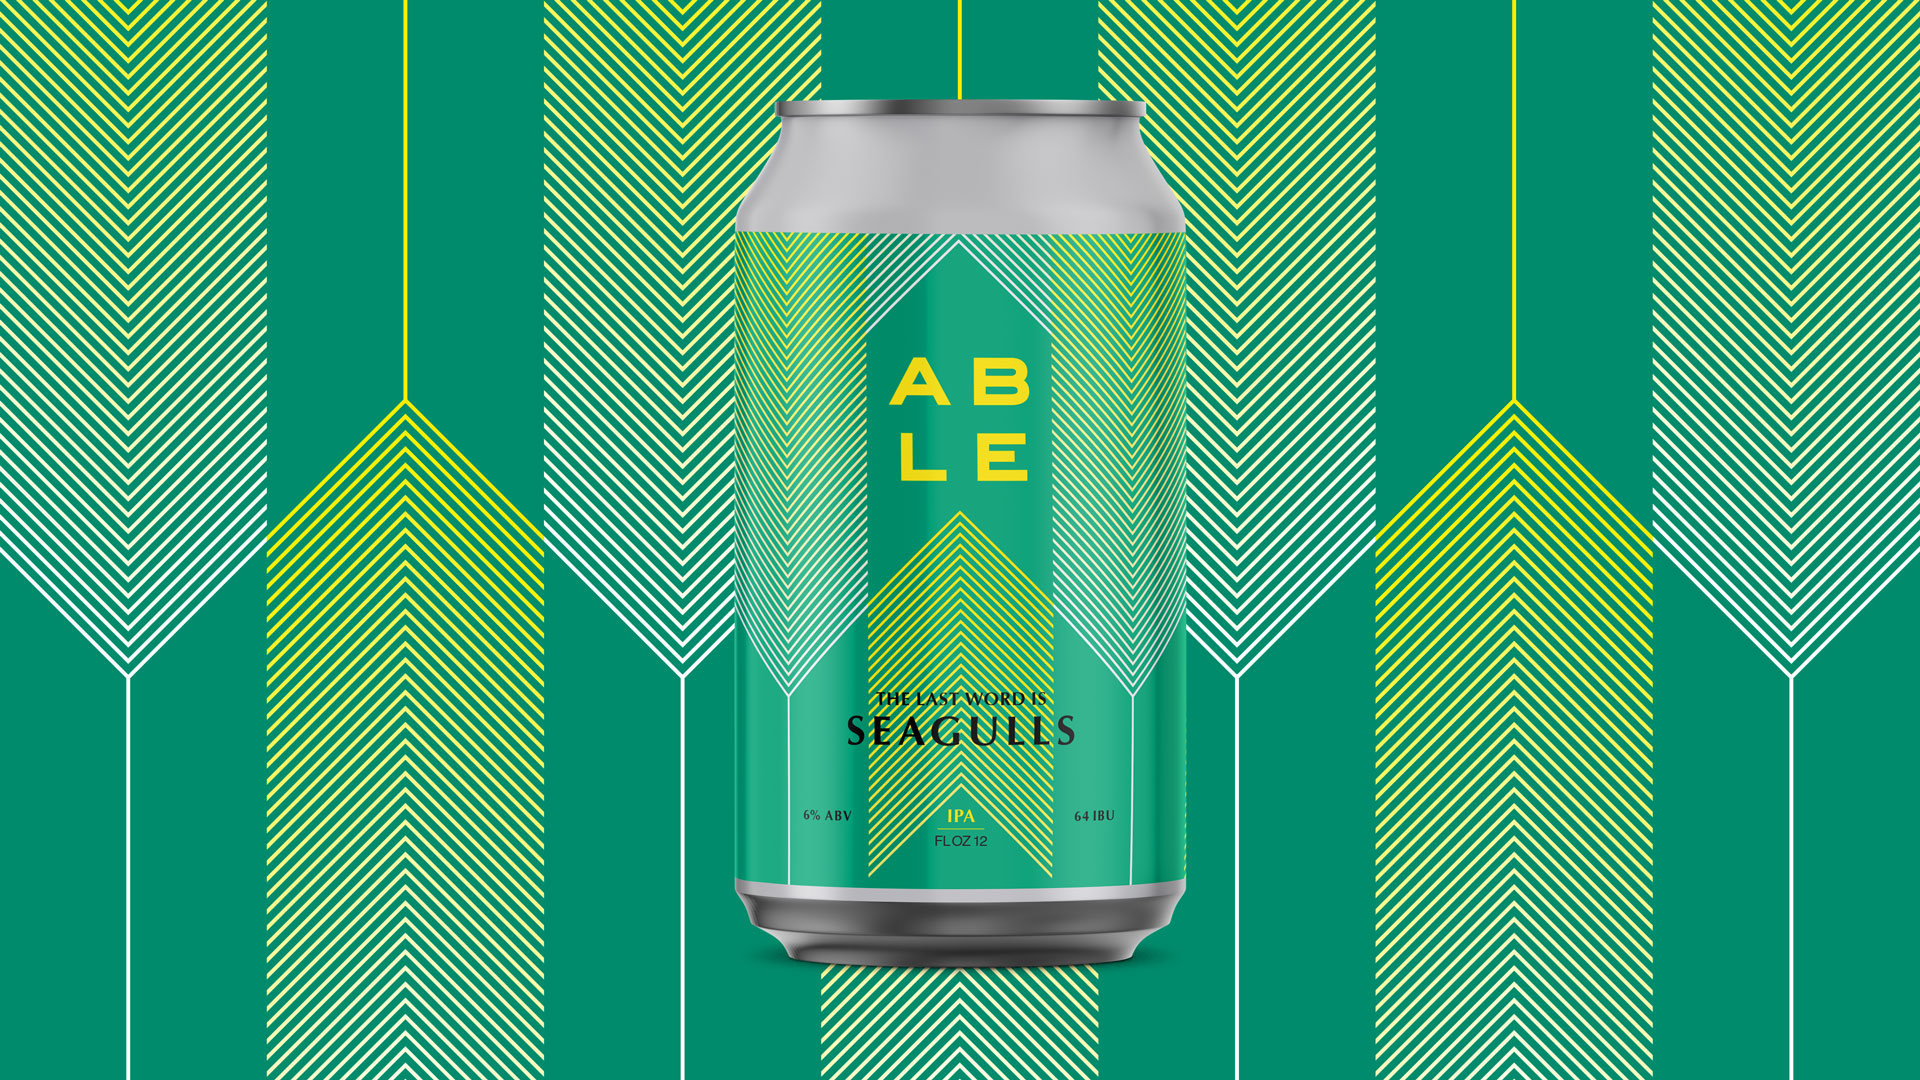 Able beer can design work by Tony Buckland.